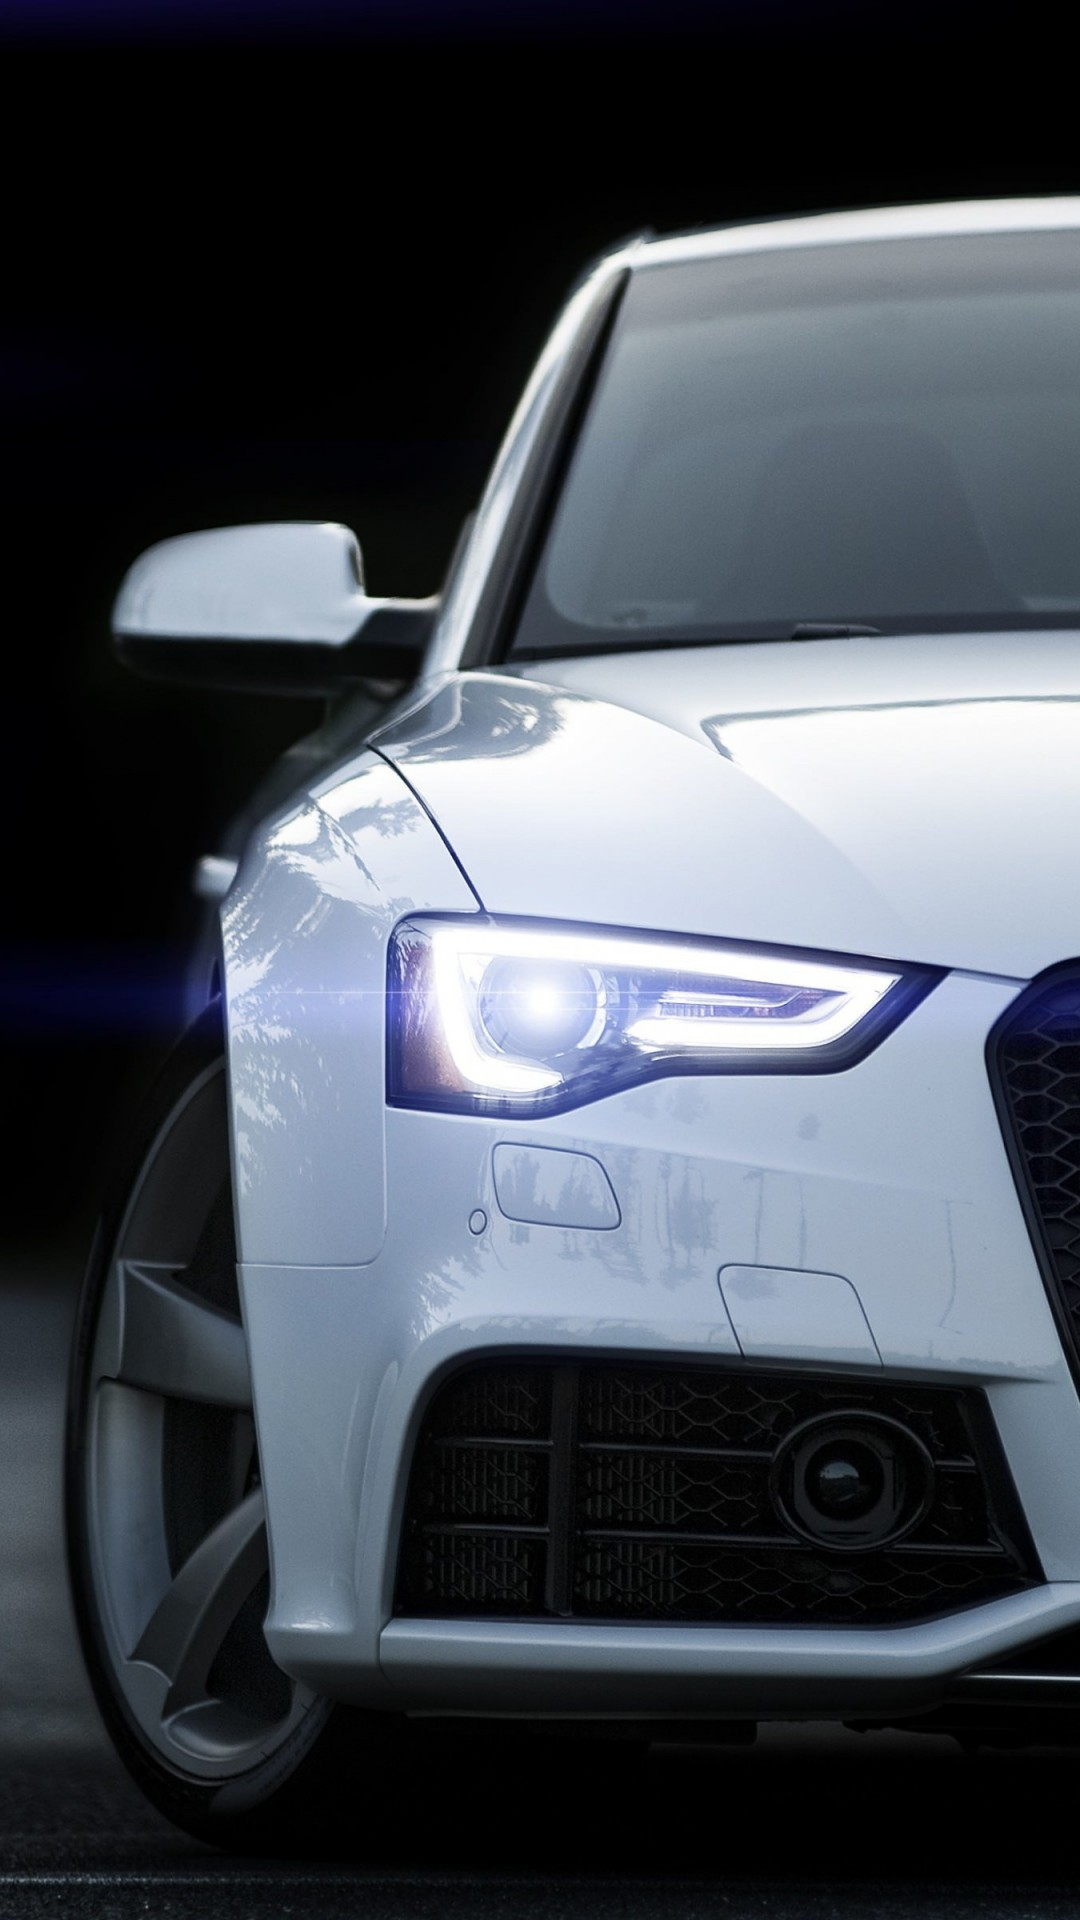 Download 2015 Audi RS 5 Coupe HD wallpaper for Nexus 5 - HDwallpapers.net